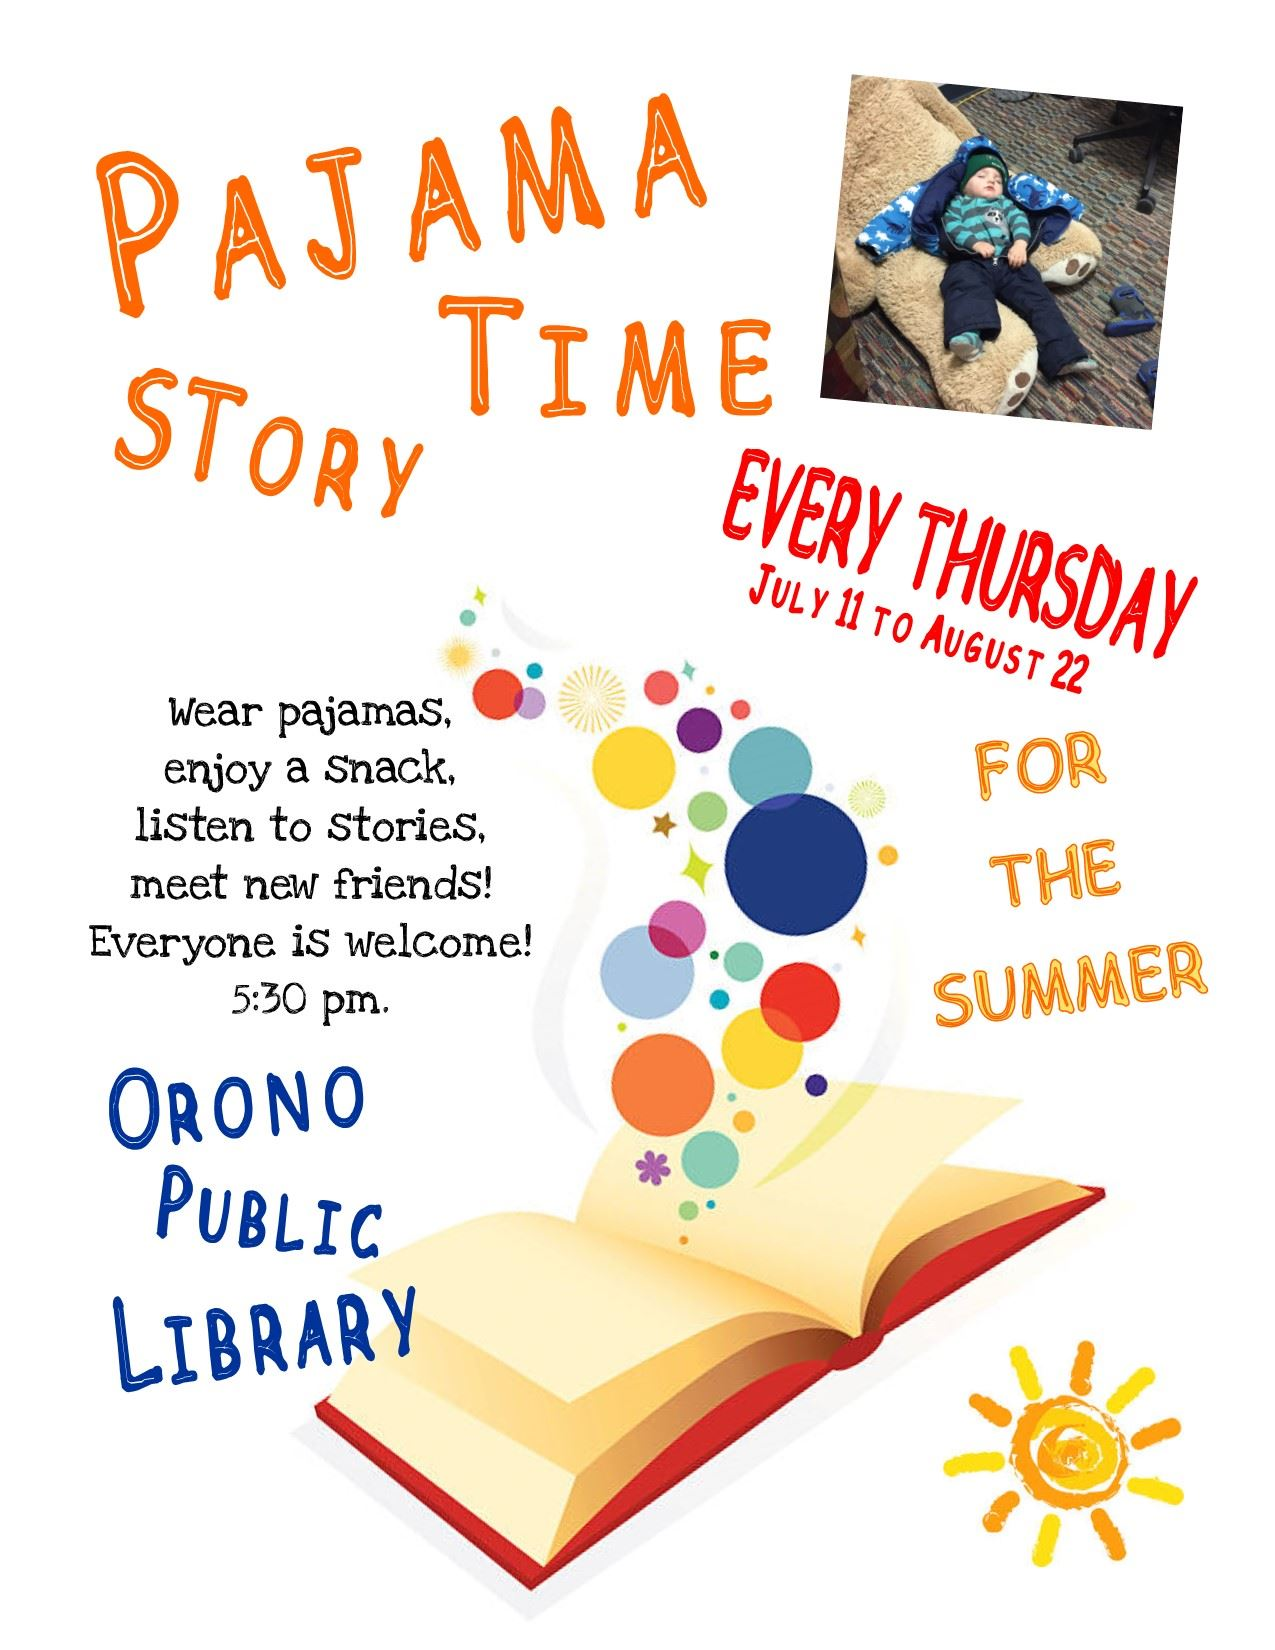 PajamaStorytime Summer 2019